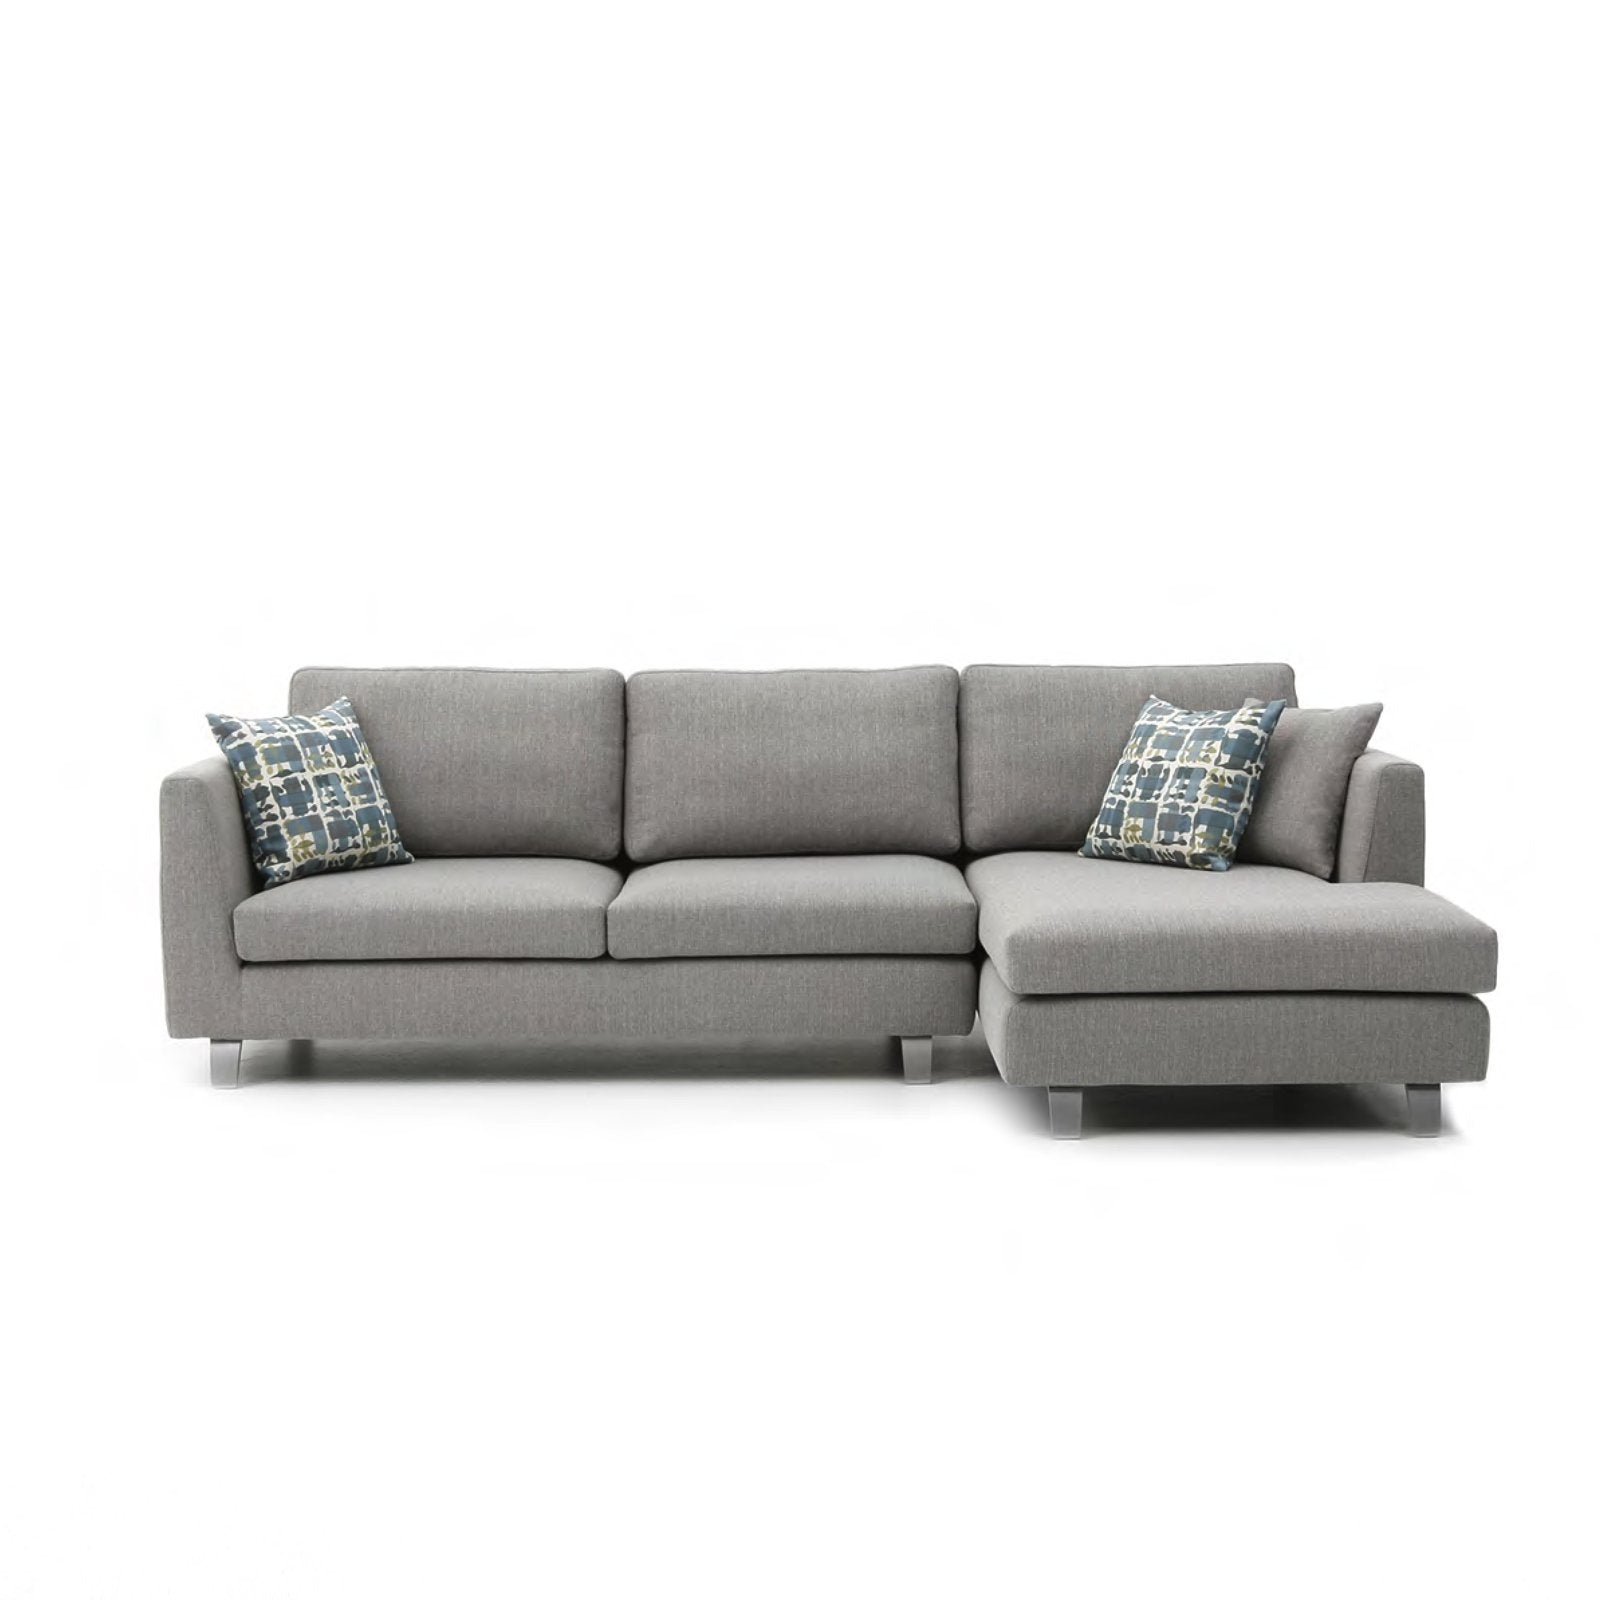 Sensational Matthew Sectional Sofa Ibusinesslaw Wood Chair Design Ideas Ibusinesslaworg